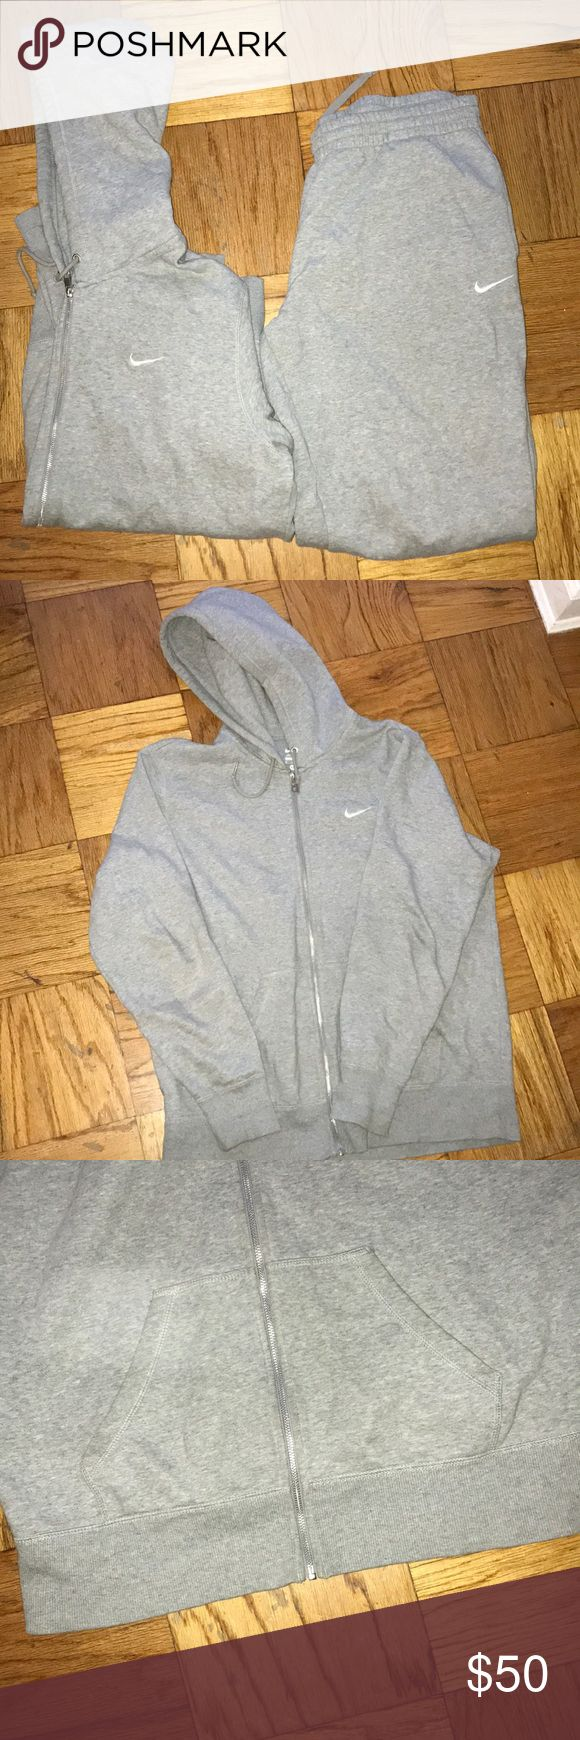 Men's gray Nike sweatsuit Men's Nike gray sweatsuit. Used. Needs to be ironed. One pocket in the back of pants. Zipper hoodie. Nike Other